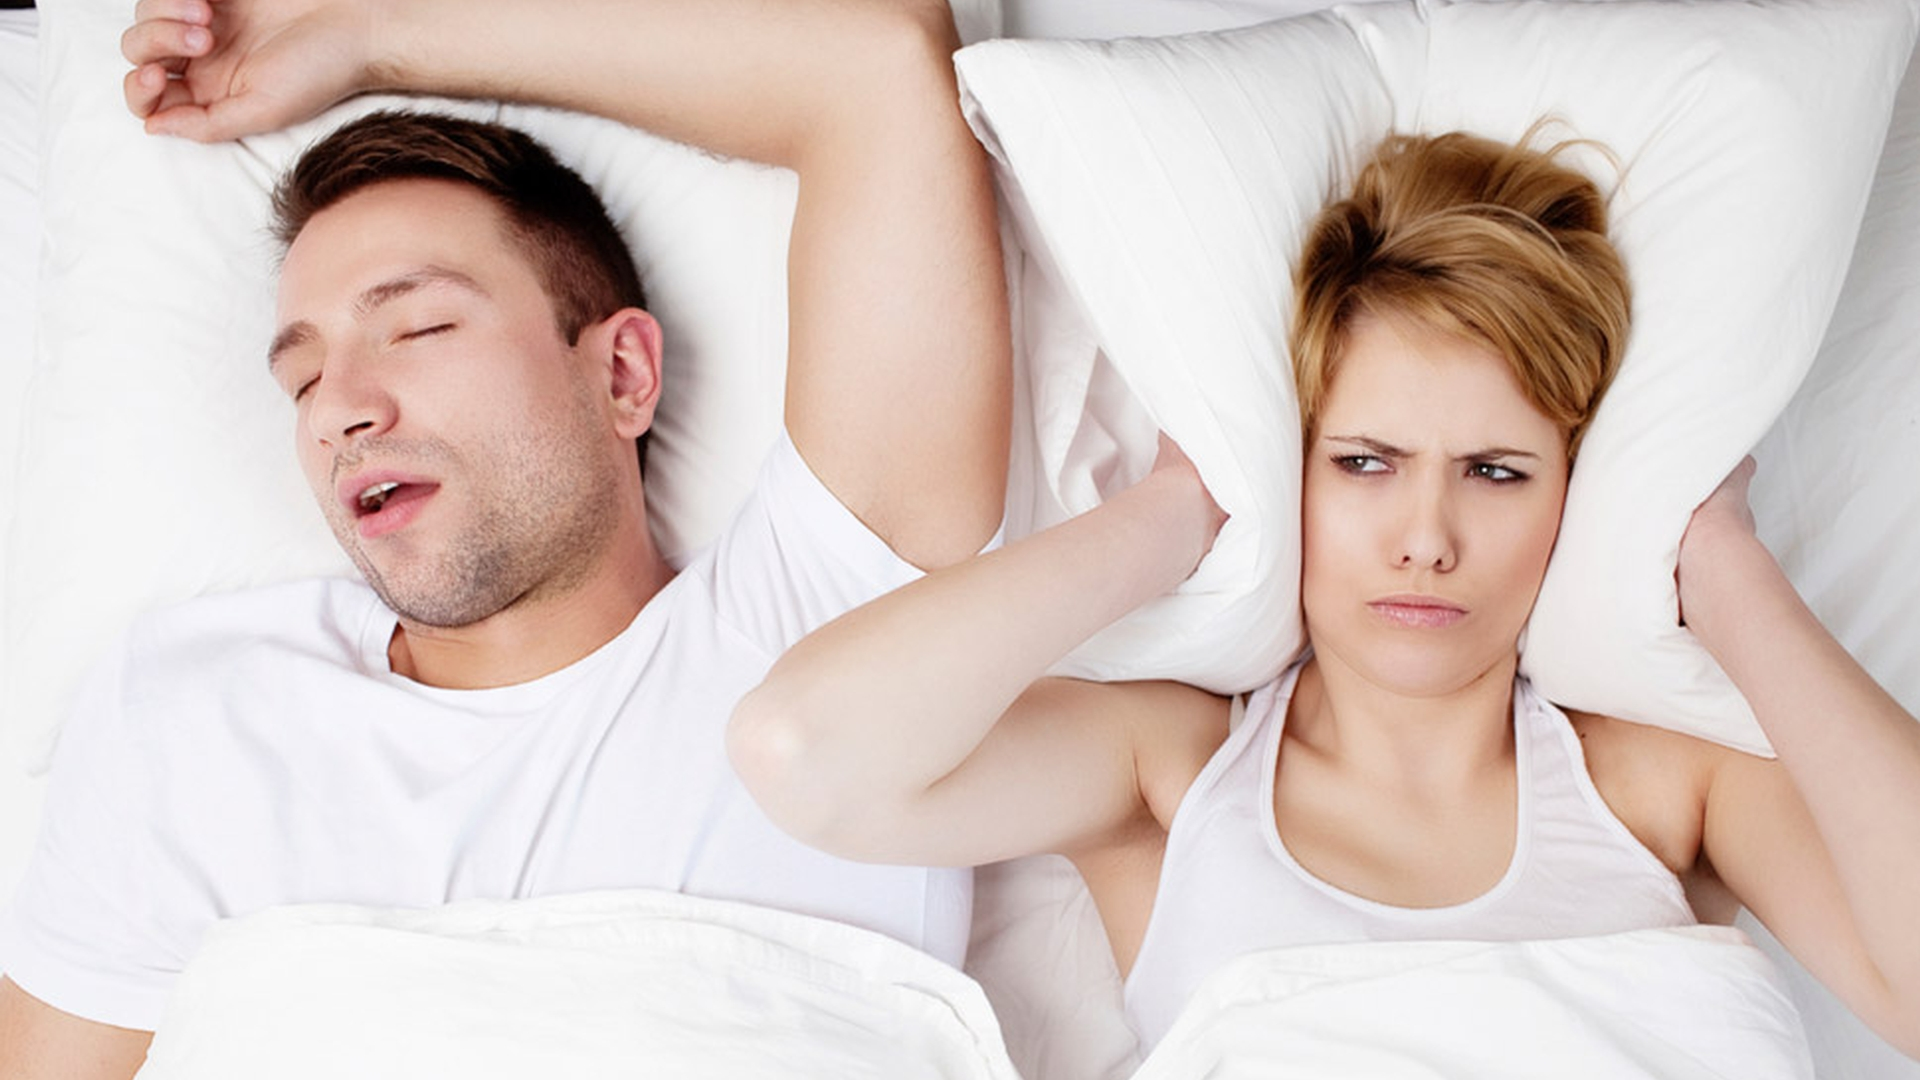 Do You snore? What is snoring and how does it affect your sleep?